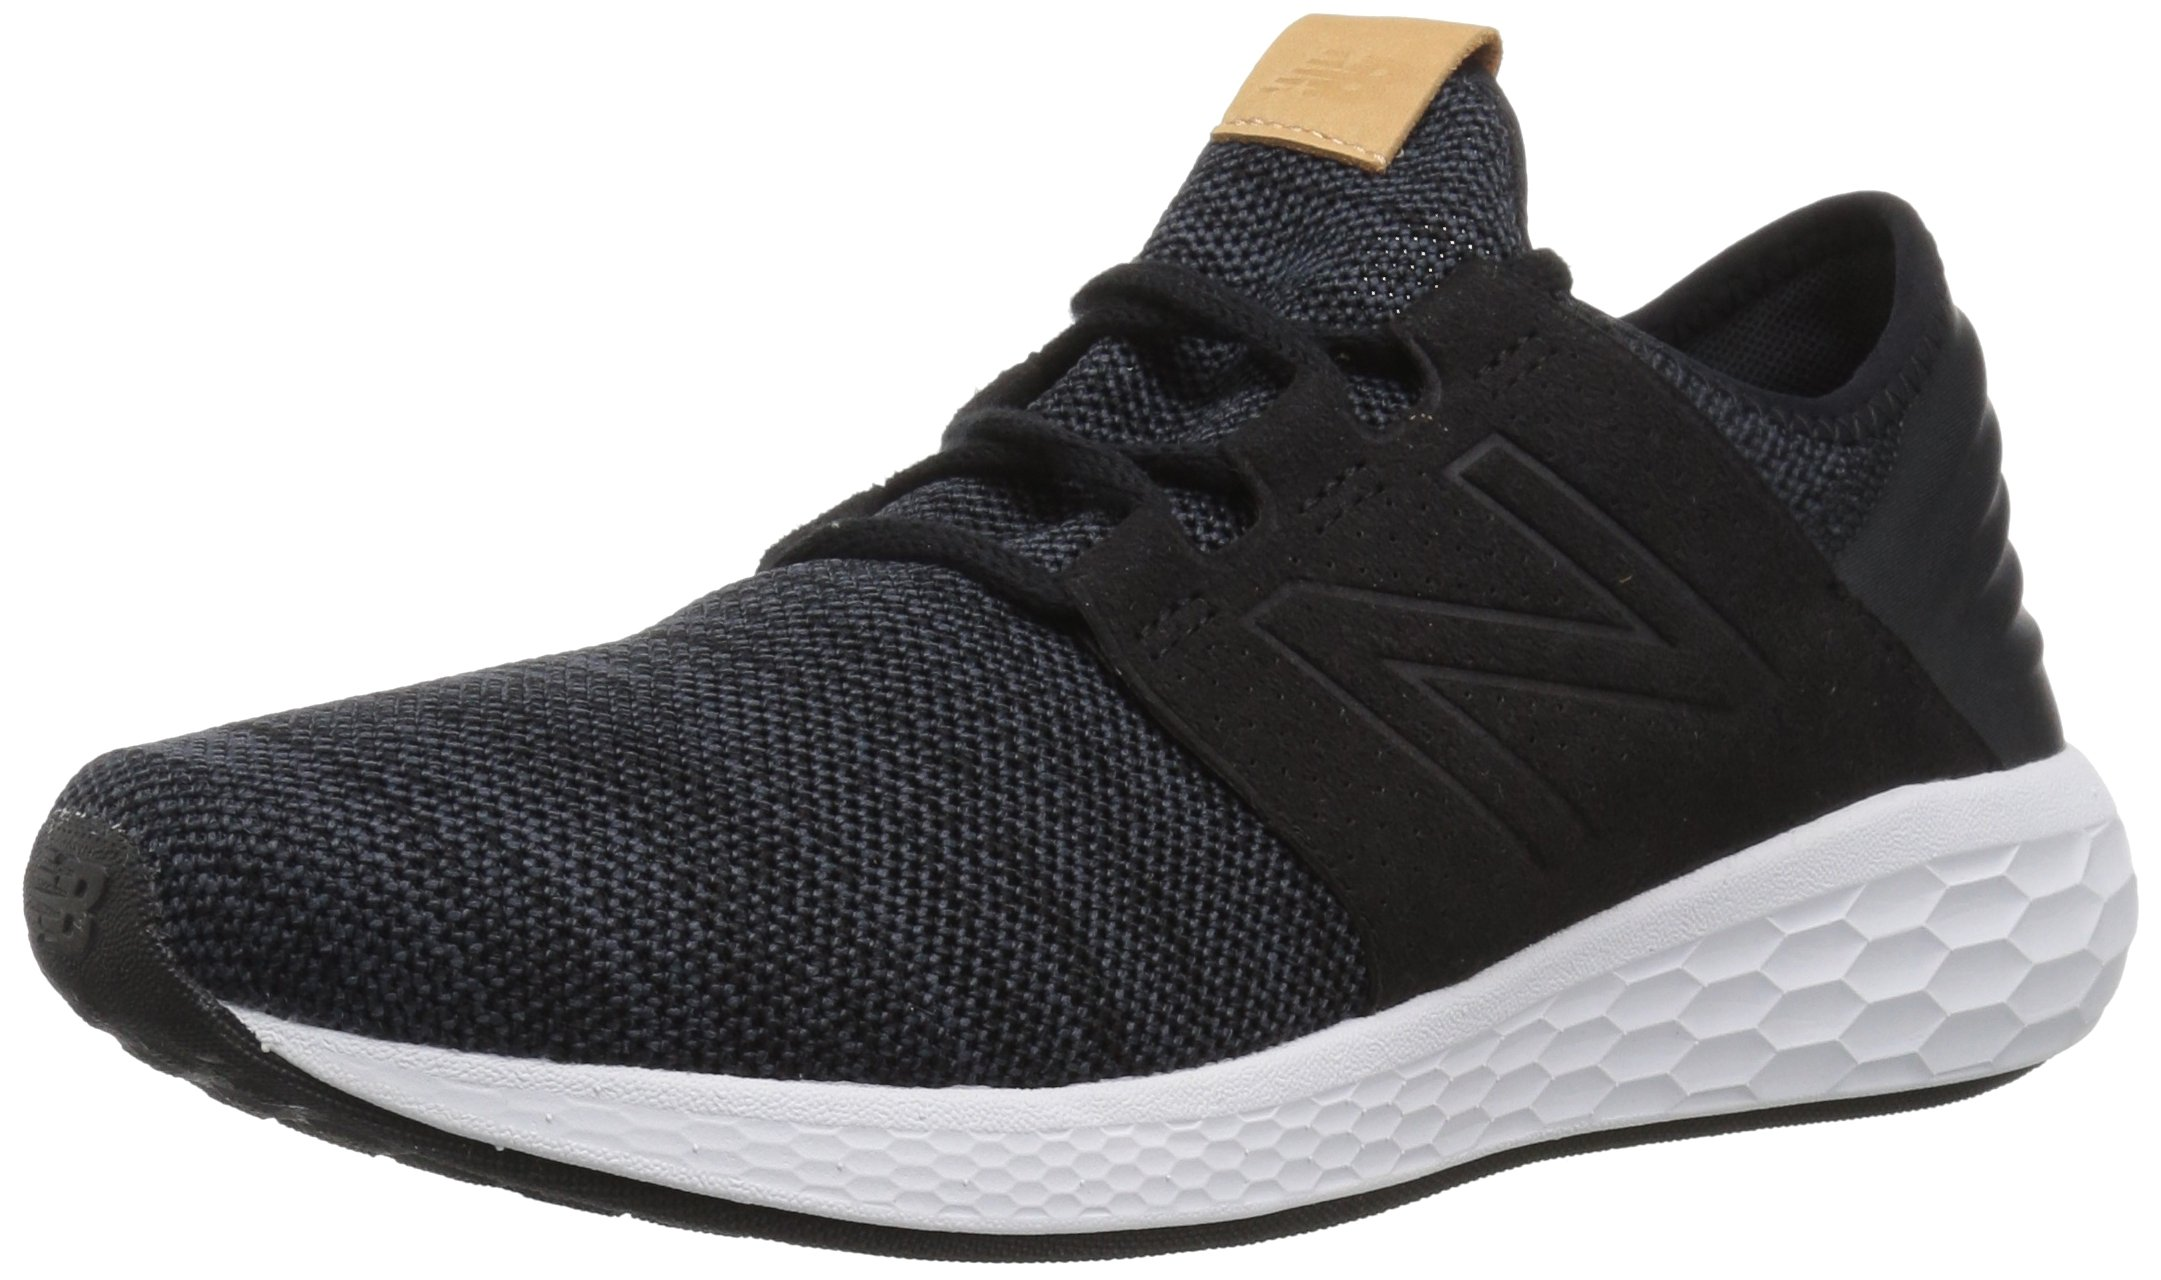 New Balance Men's Cruz V2 Fresh Foam Running Shoe, black/white, 12 D US